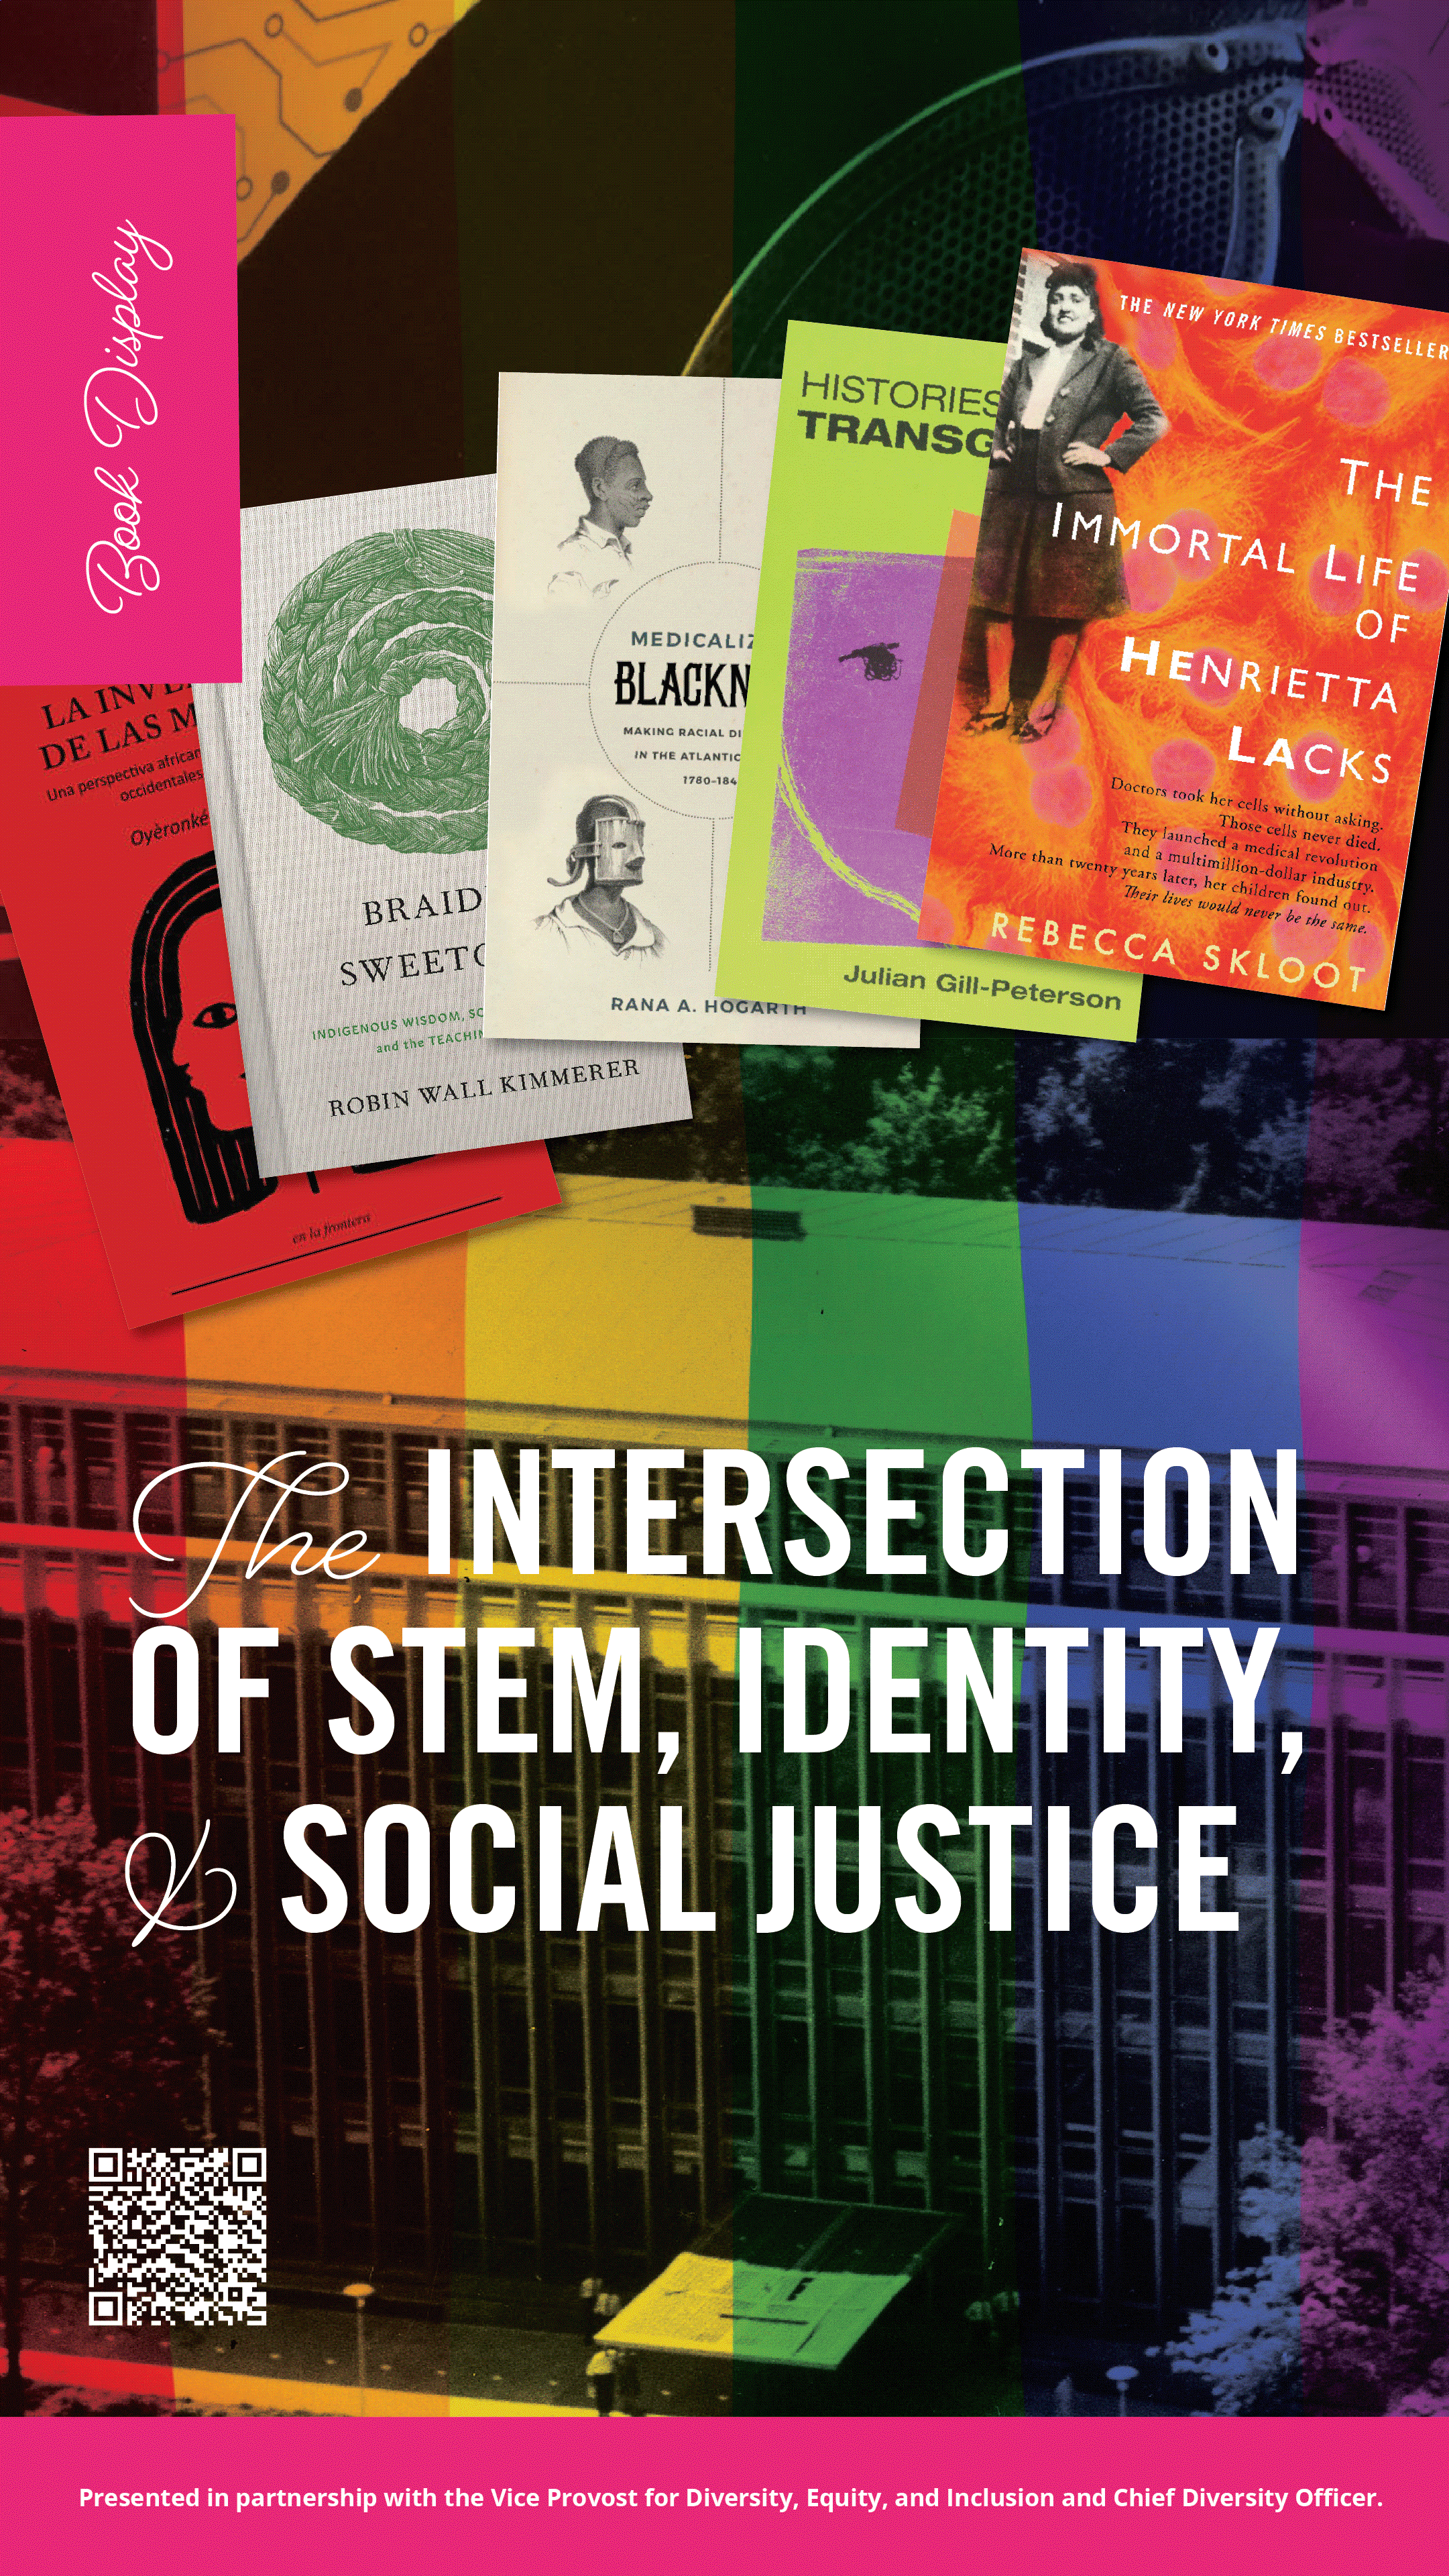 """Flyer featuring images of books, reading """"The Intersection of STEM, Identity, and Social Justice. Presented in partnership with the Vice Provost for Diversity, Equity, and Inclusion and Chief Diversity Officer."""